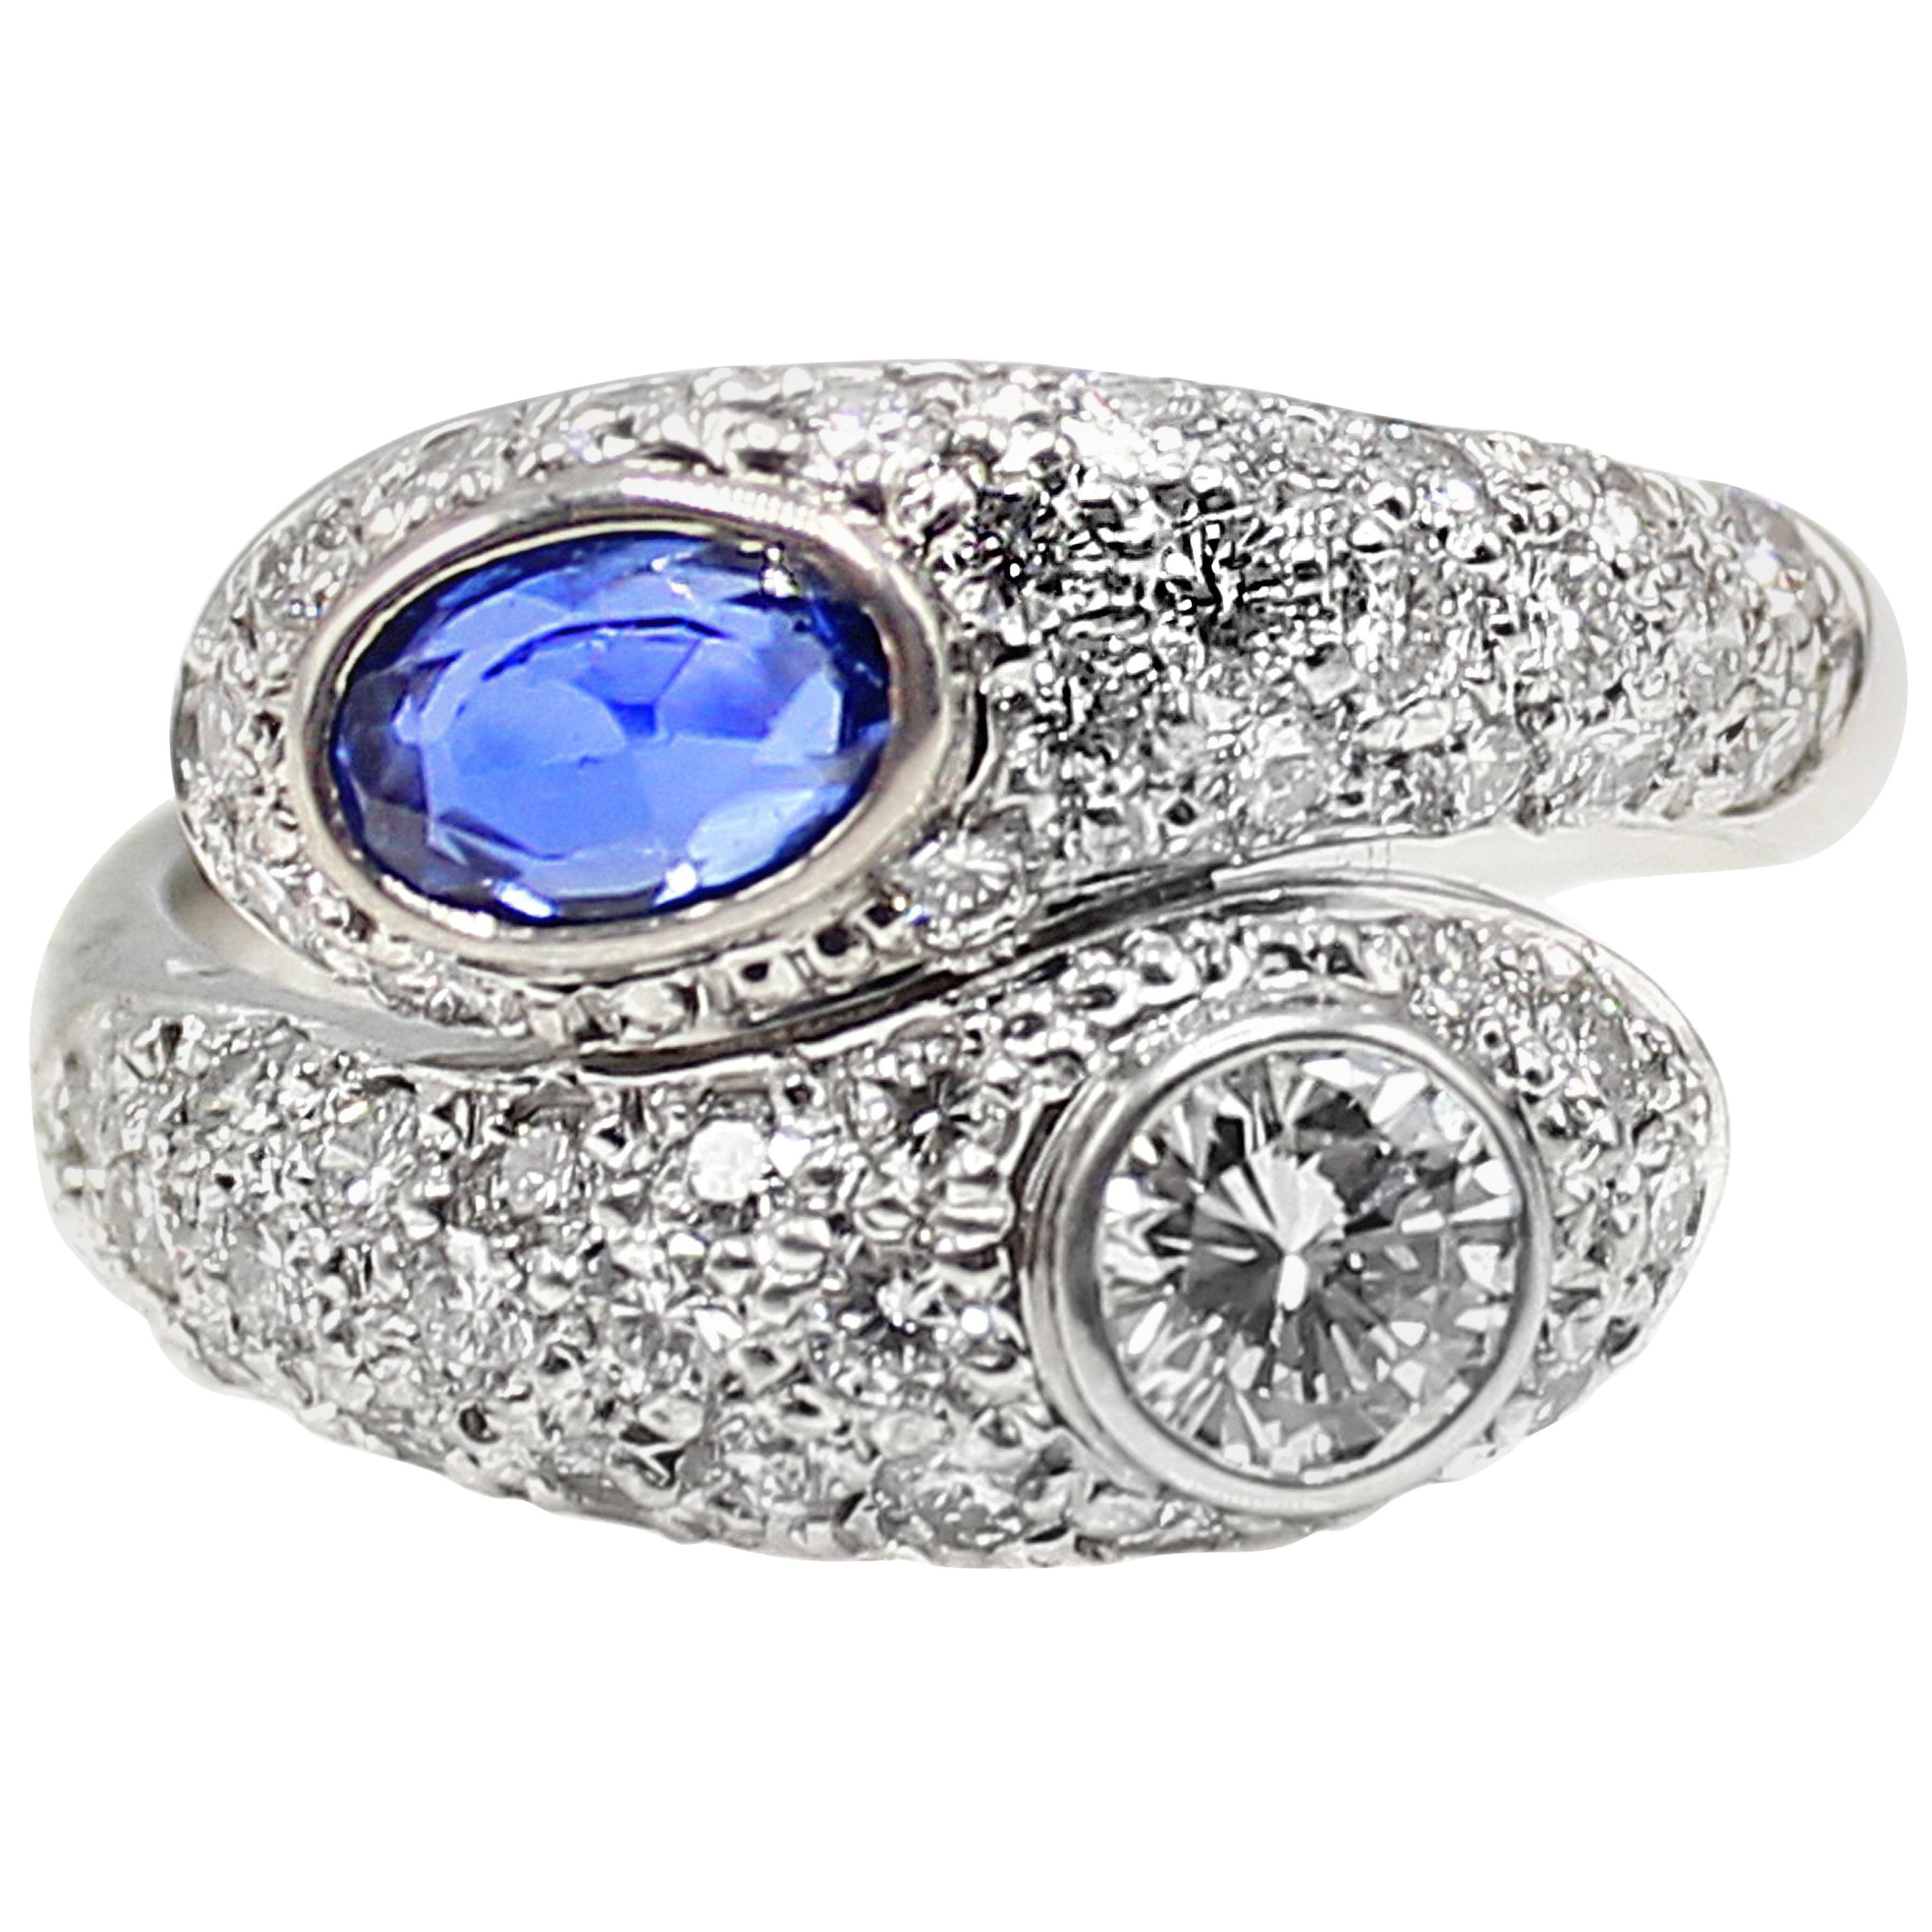 a7c0c2413 Tiffany and Co. 1950's Diamond, Sapphire and Platinum 'Moi et Toi' Ring at  1stdibs